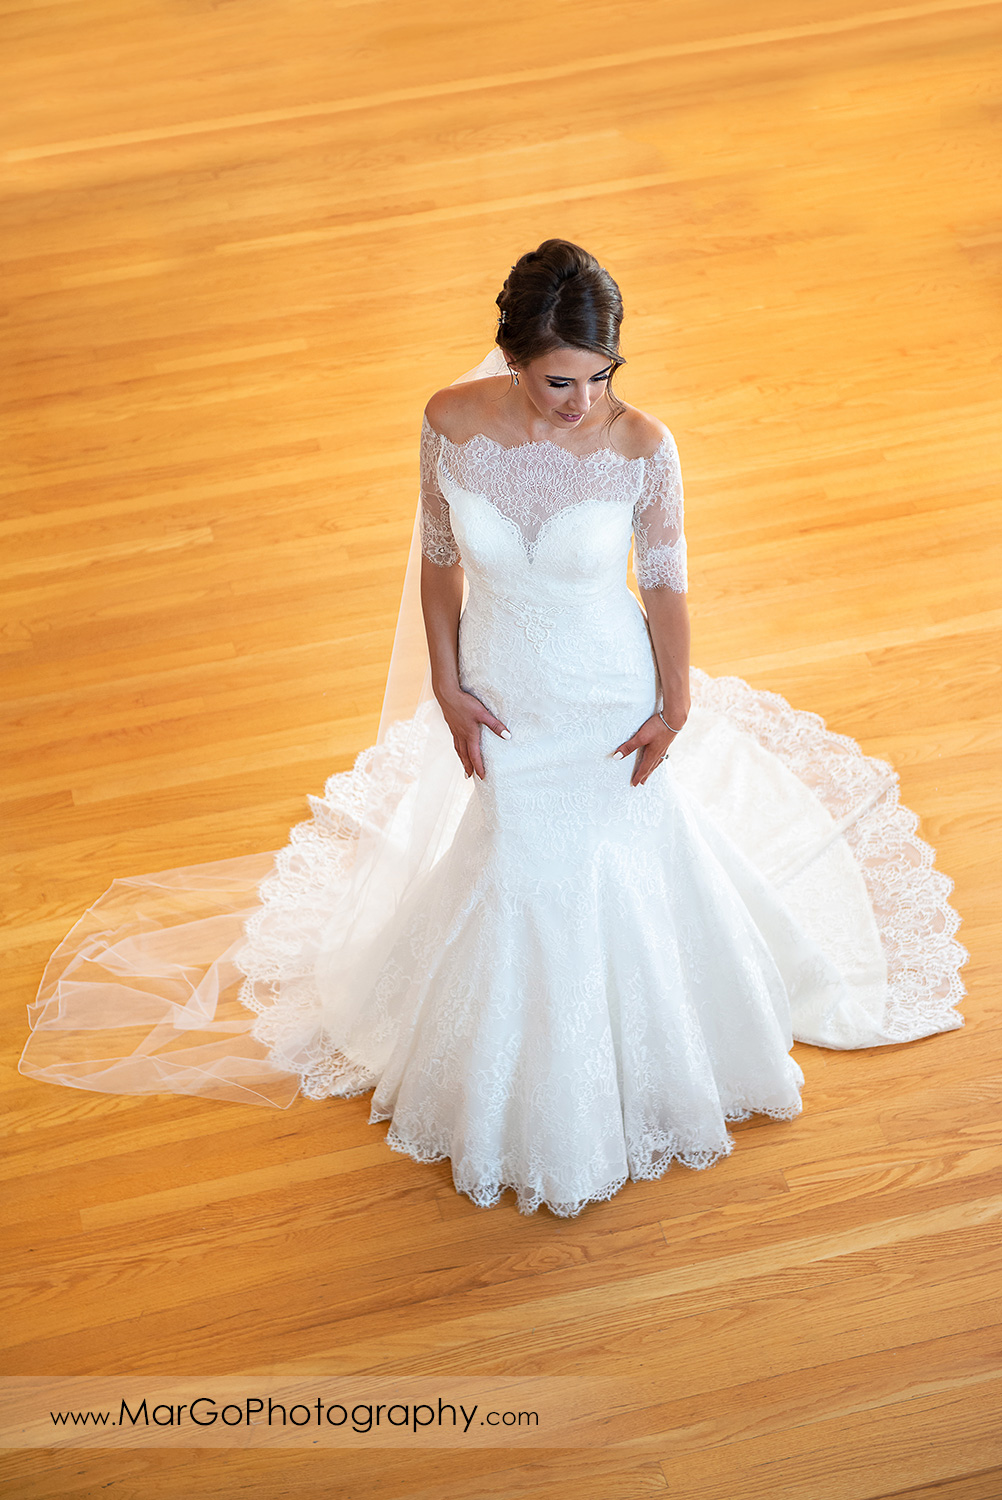 high angle portrait of the bride on wood floor